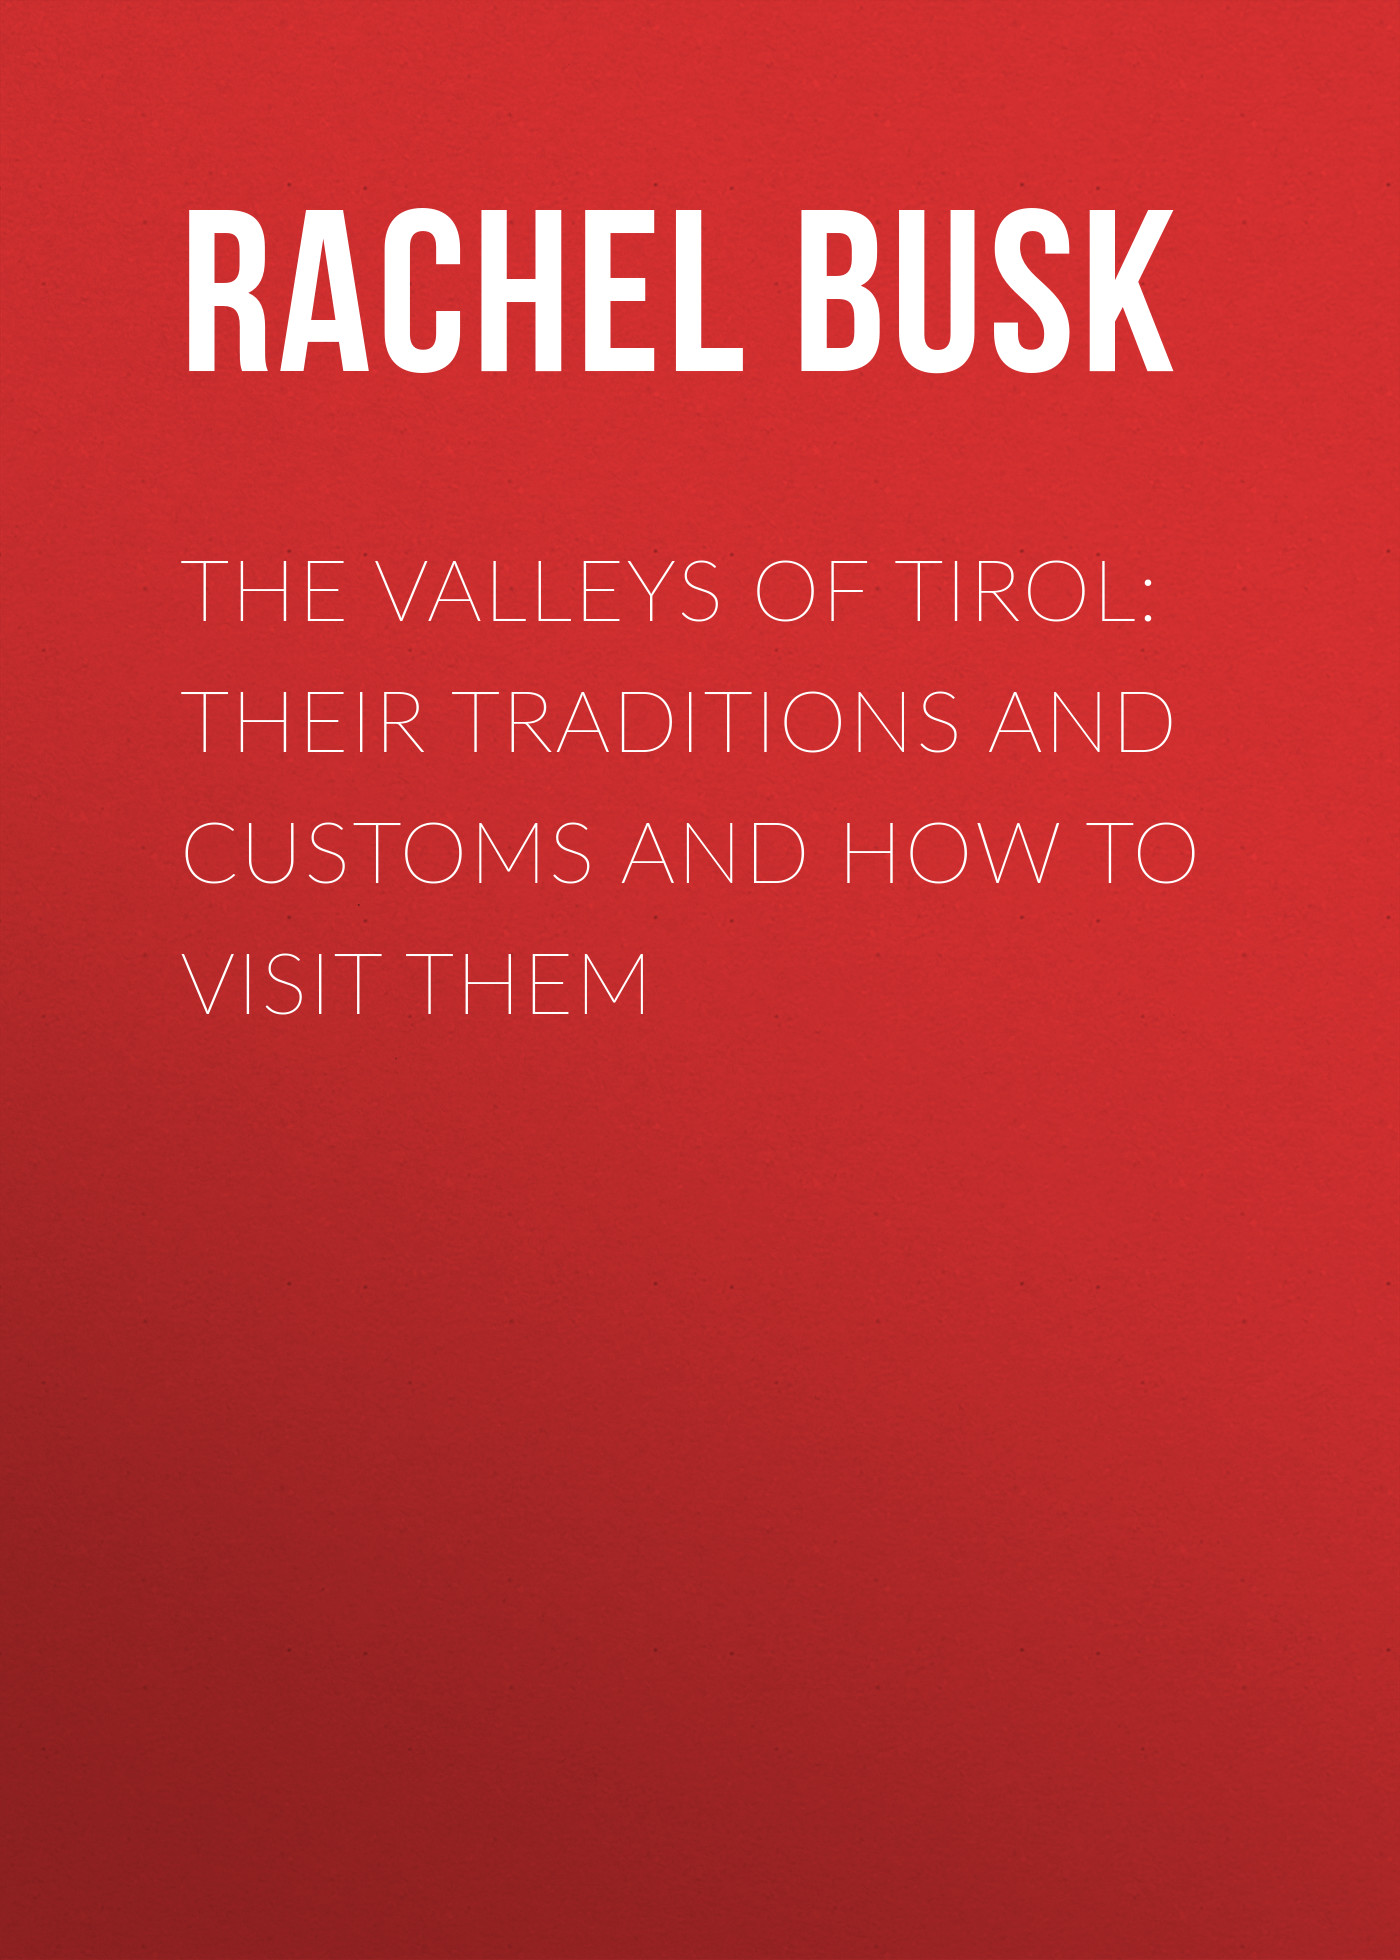 Busk Rachel Harriette The Valleys of Tirol: Their traditions and customs and how to visit them thomas h h harry higgott sweet peas and how to grow them